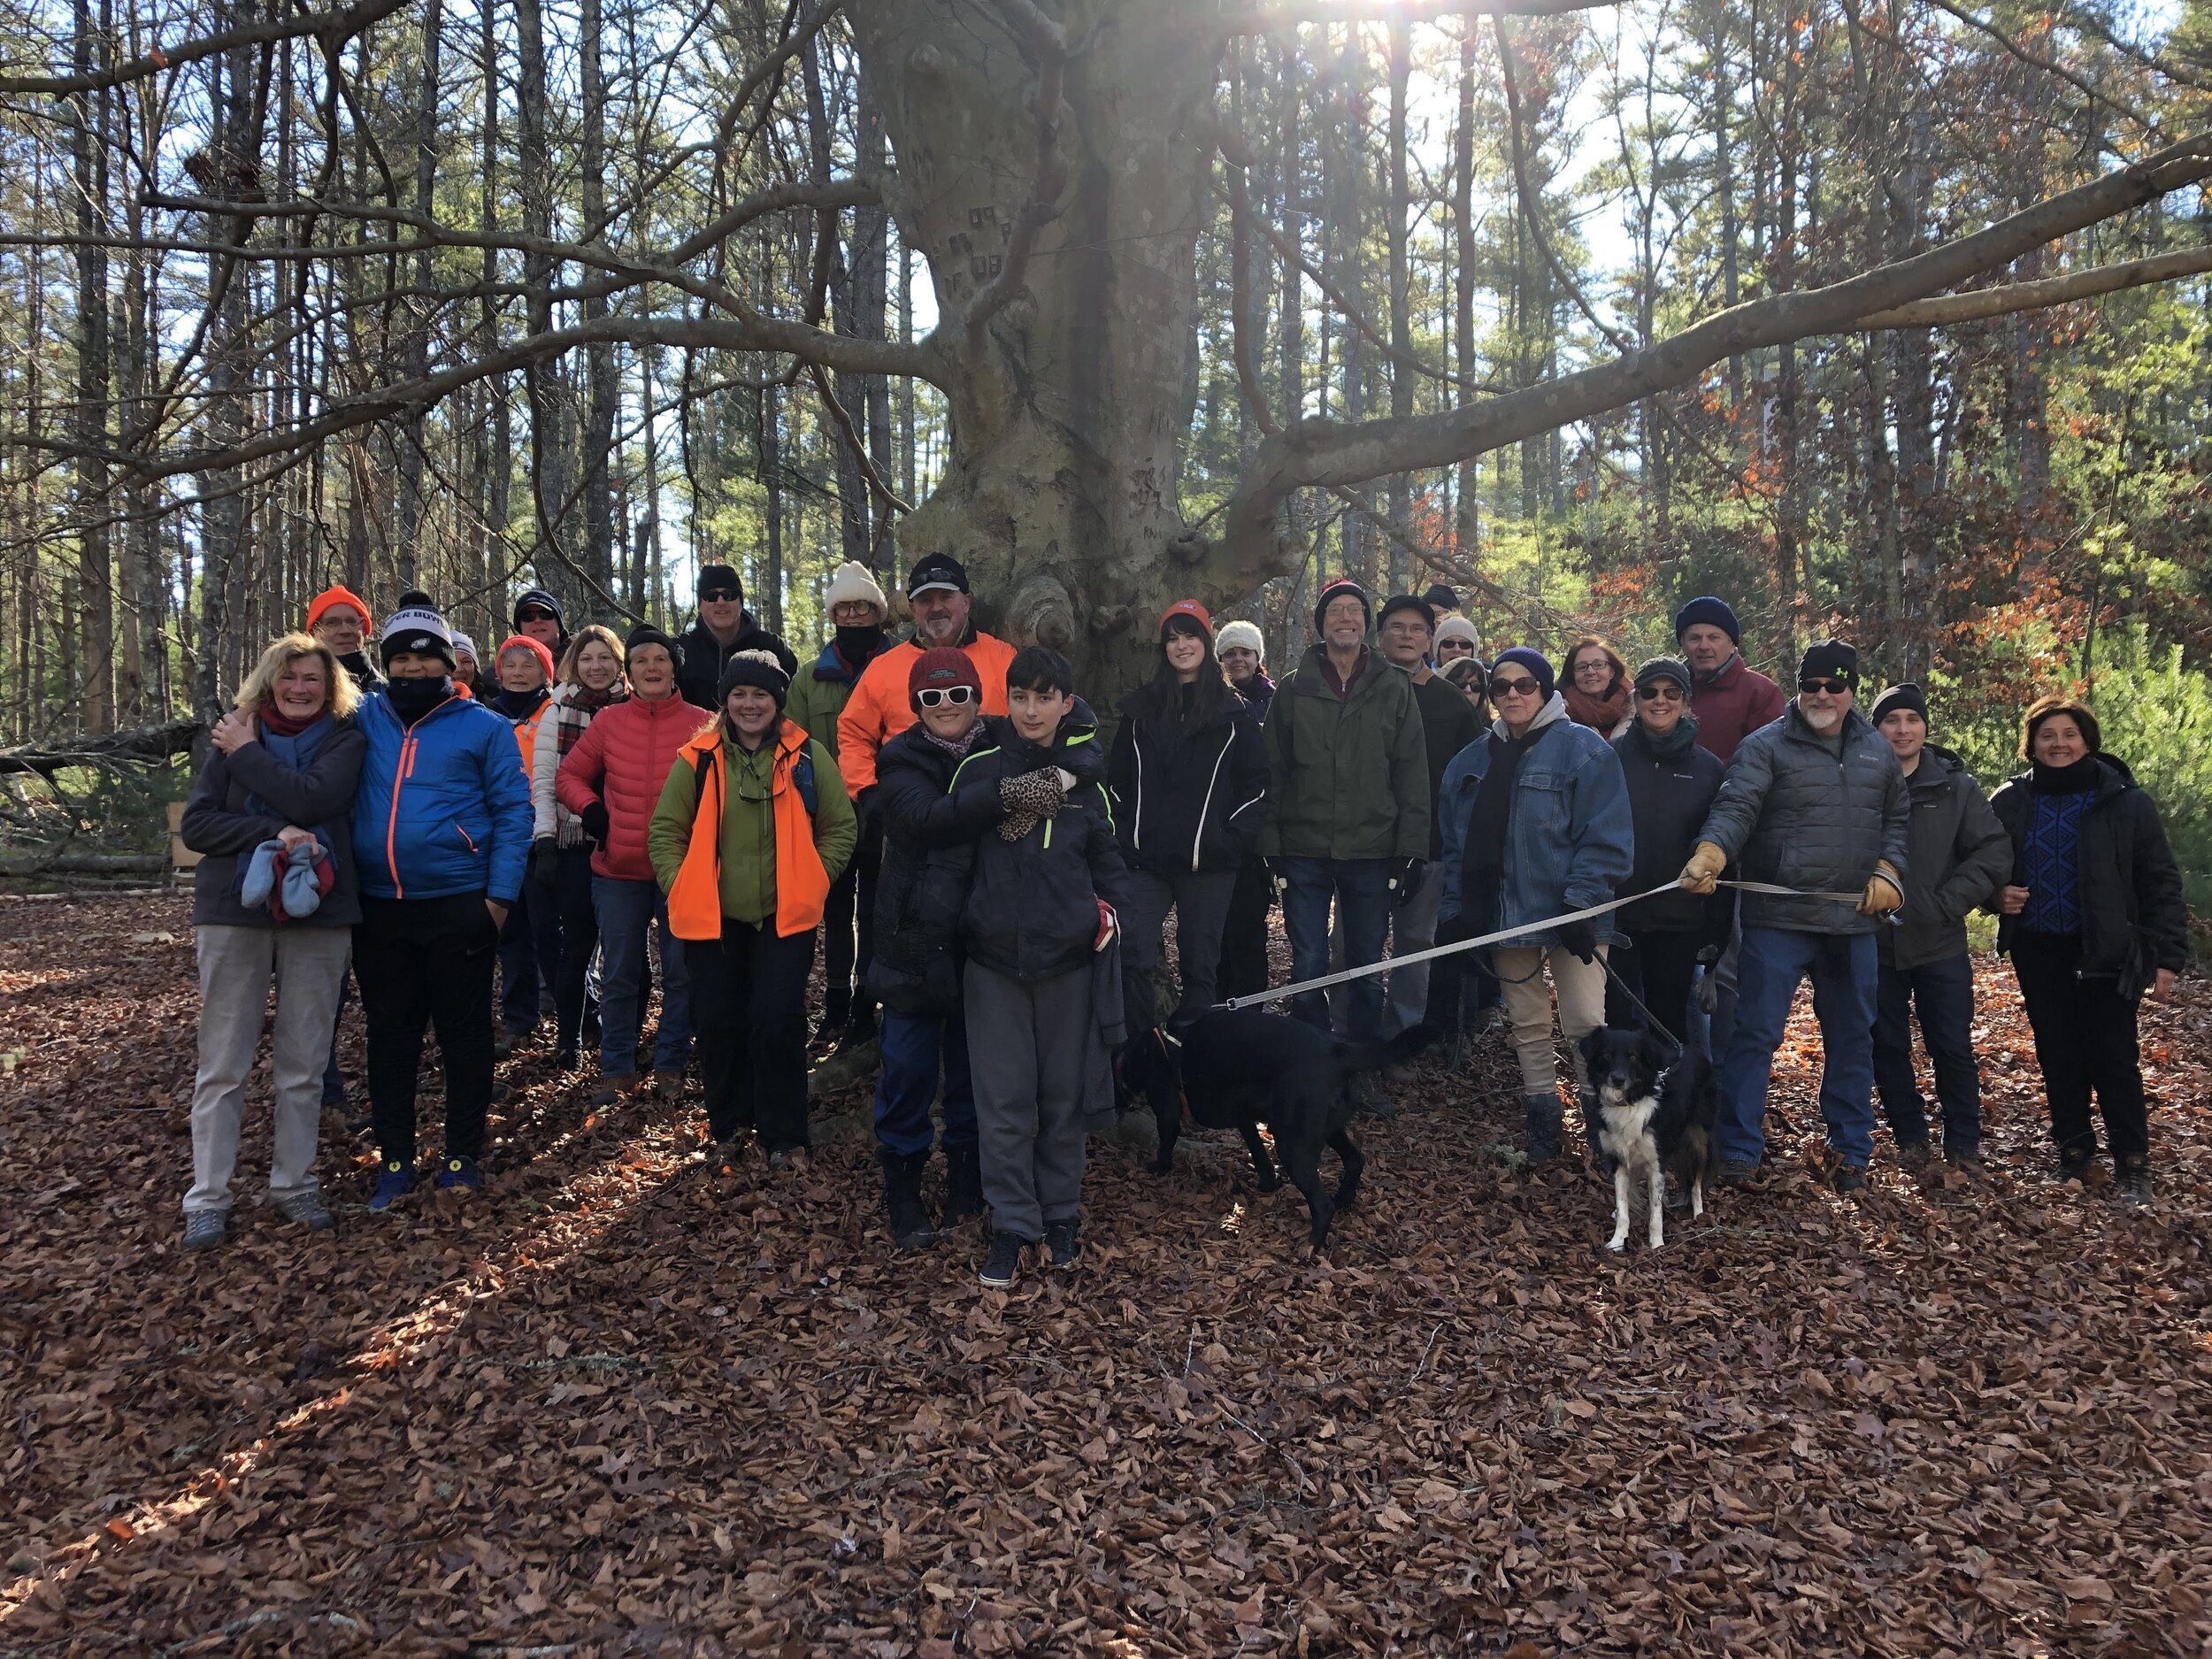 Hikers gather at the Beech Tree Clearing at the 2018 Post Feast Waddle.